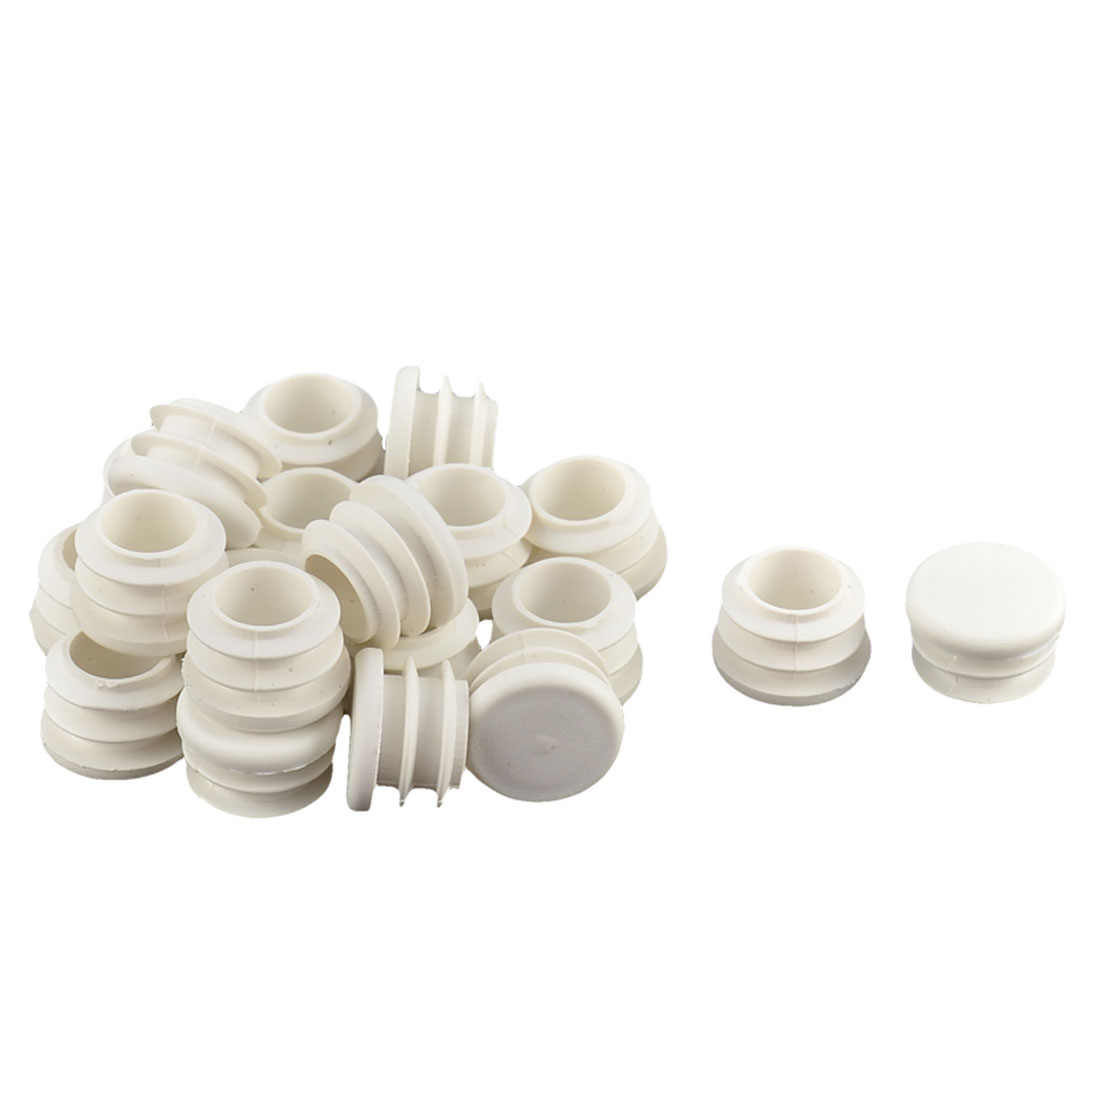 Office Plastic Round Shaped Furniture Table Chair Leg Foot Tube Insert White 20 Pcs